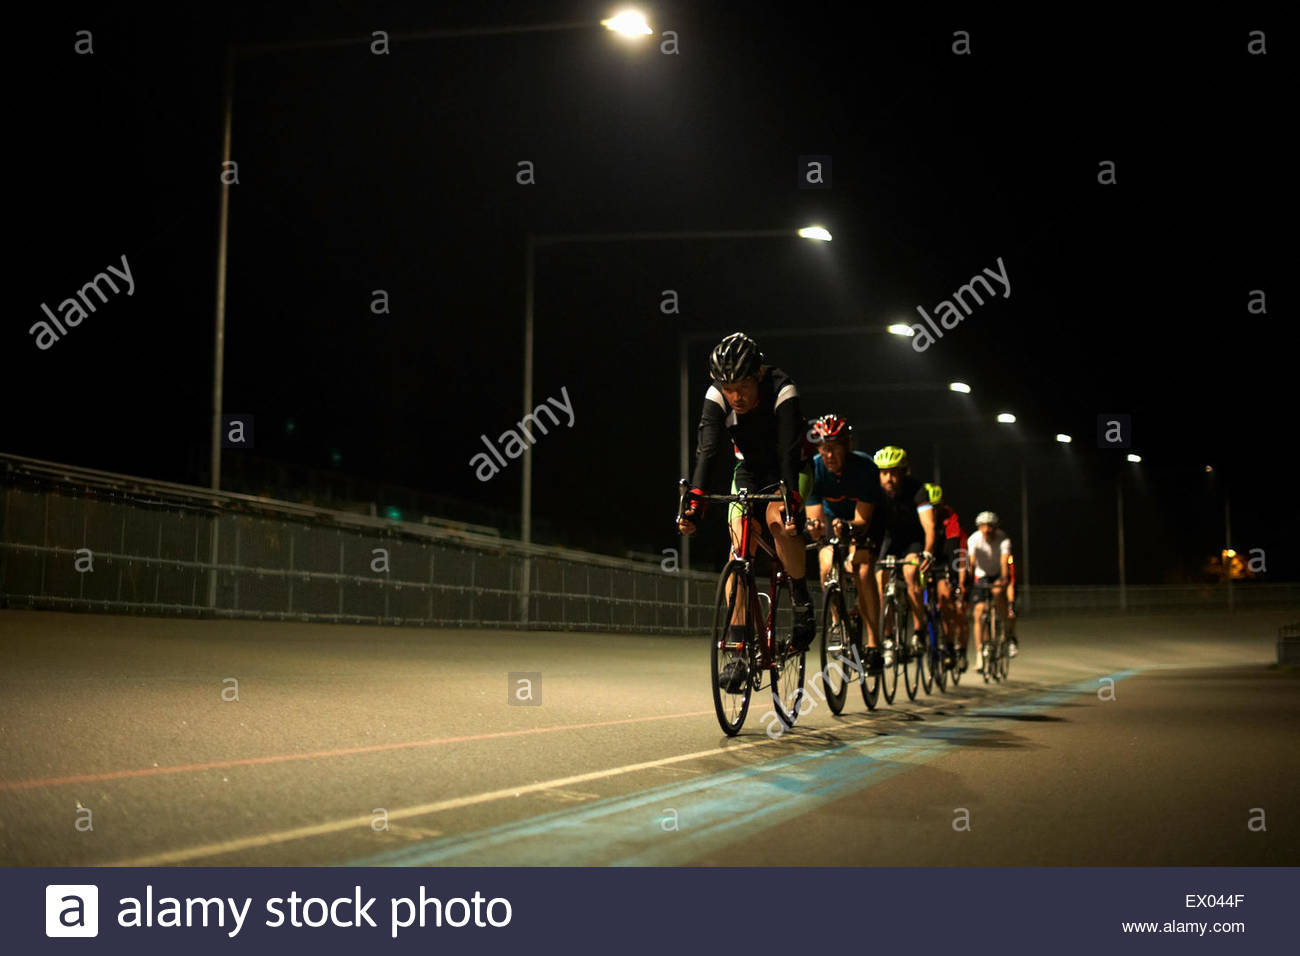 Cyclists cycling on track at velodrome, outdoors - Stock Image